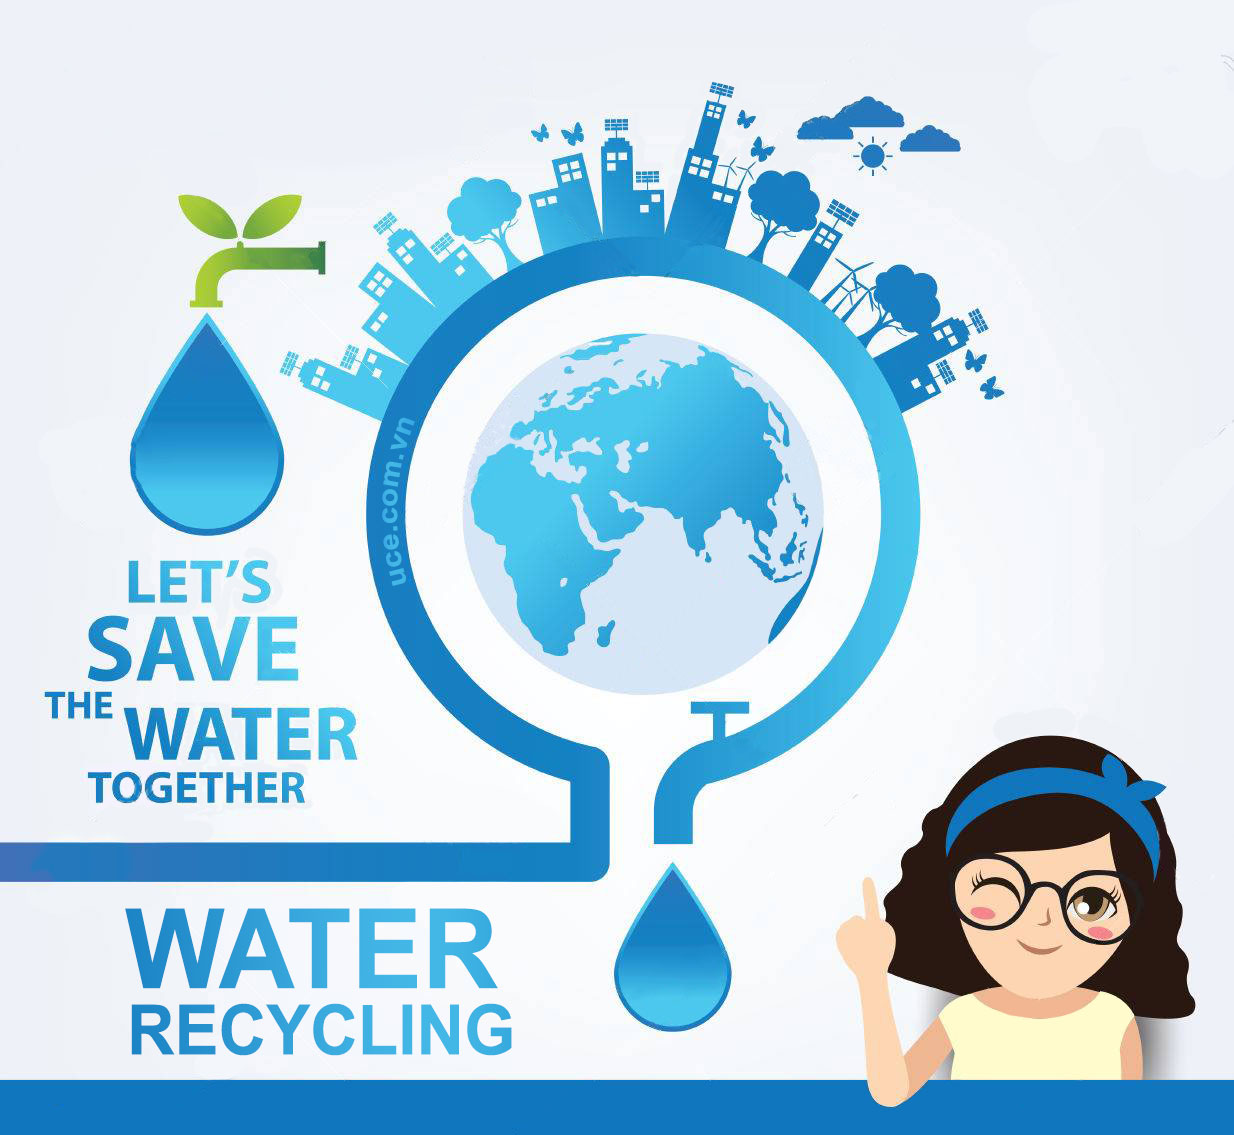 recycling-waste-water-is-being-widely-applied